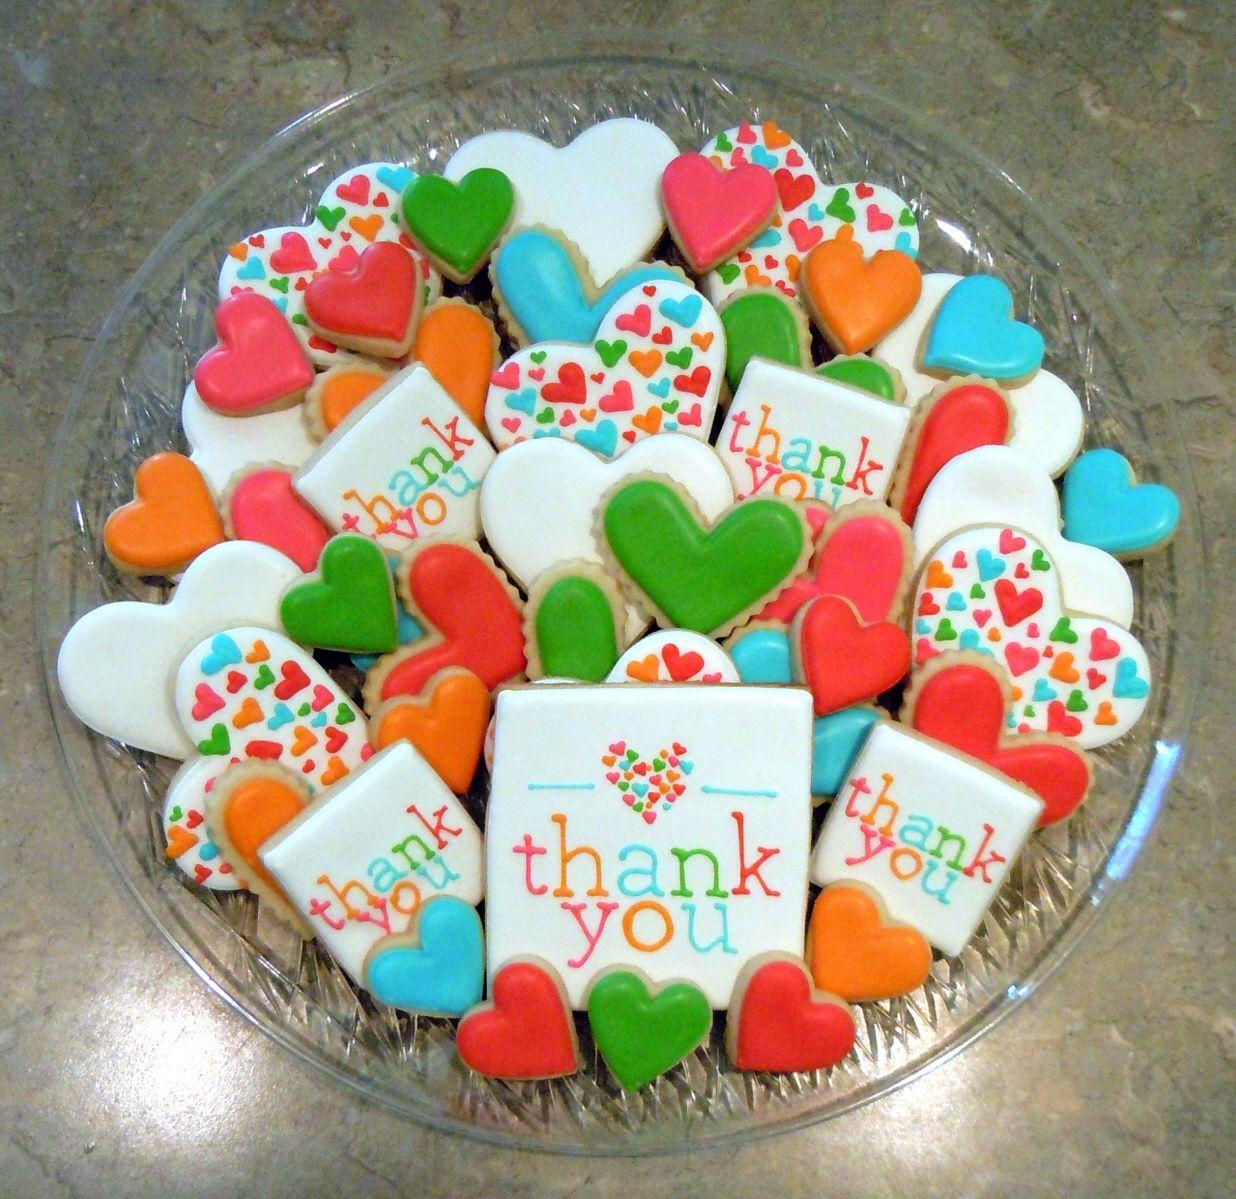 Bake Up A Platter Of Thank You Cookies To Deliver To A